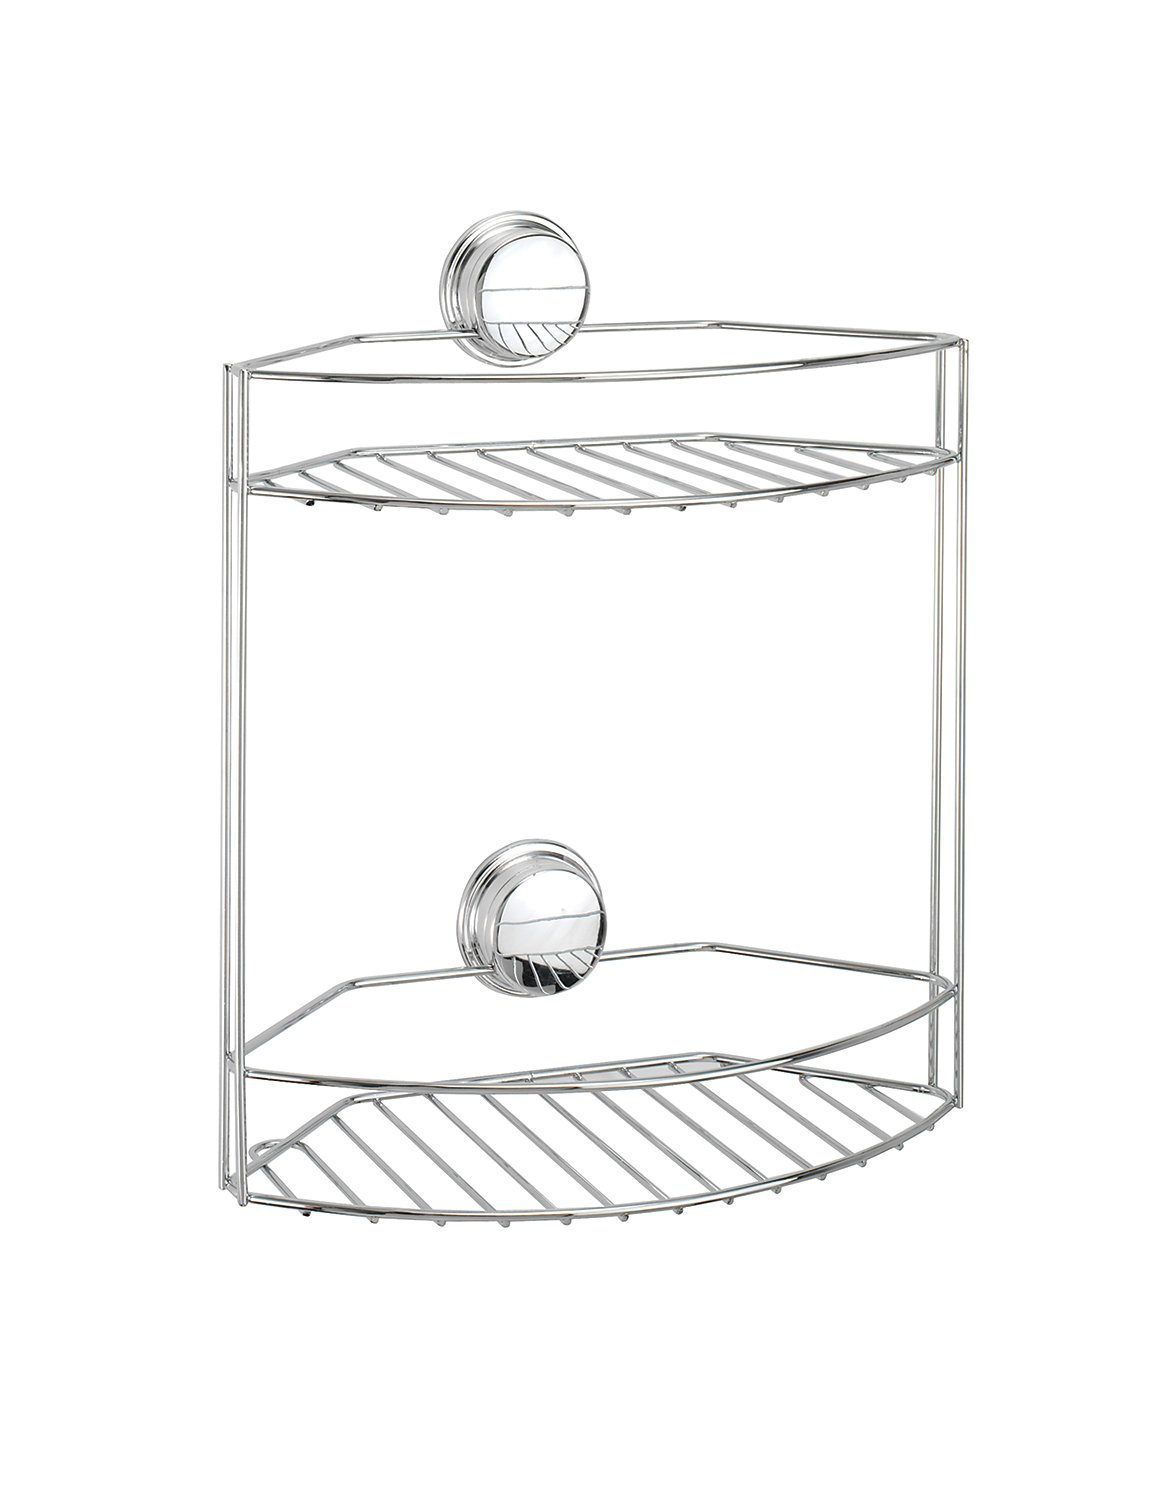 Amazon.com: Better Living Products 13815 Twist N Lock Plus 2-Tier ...